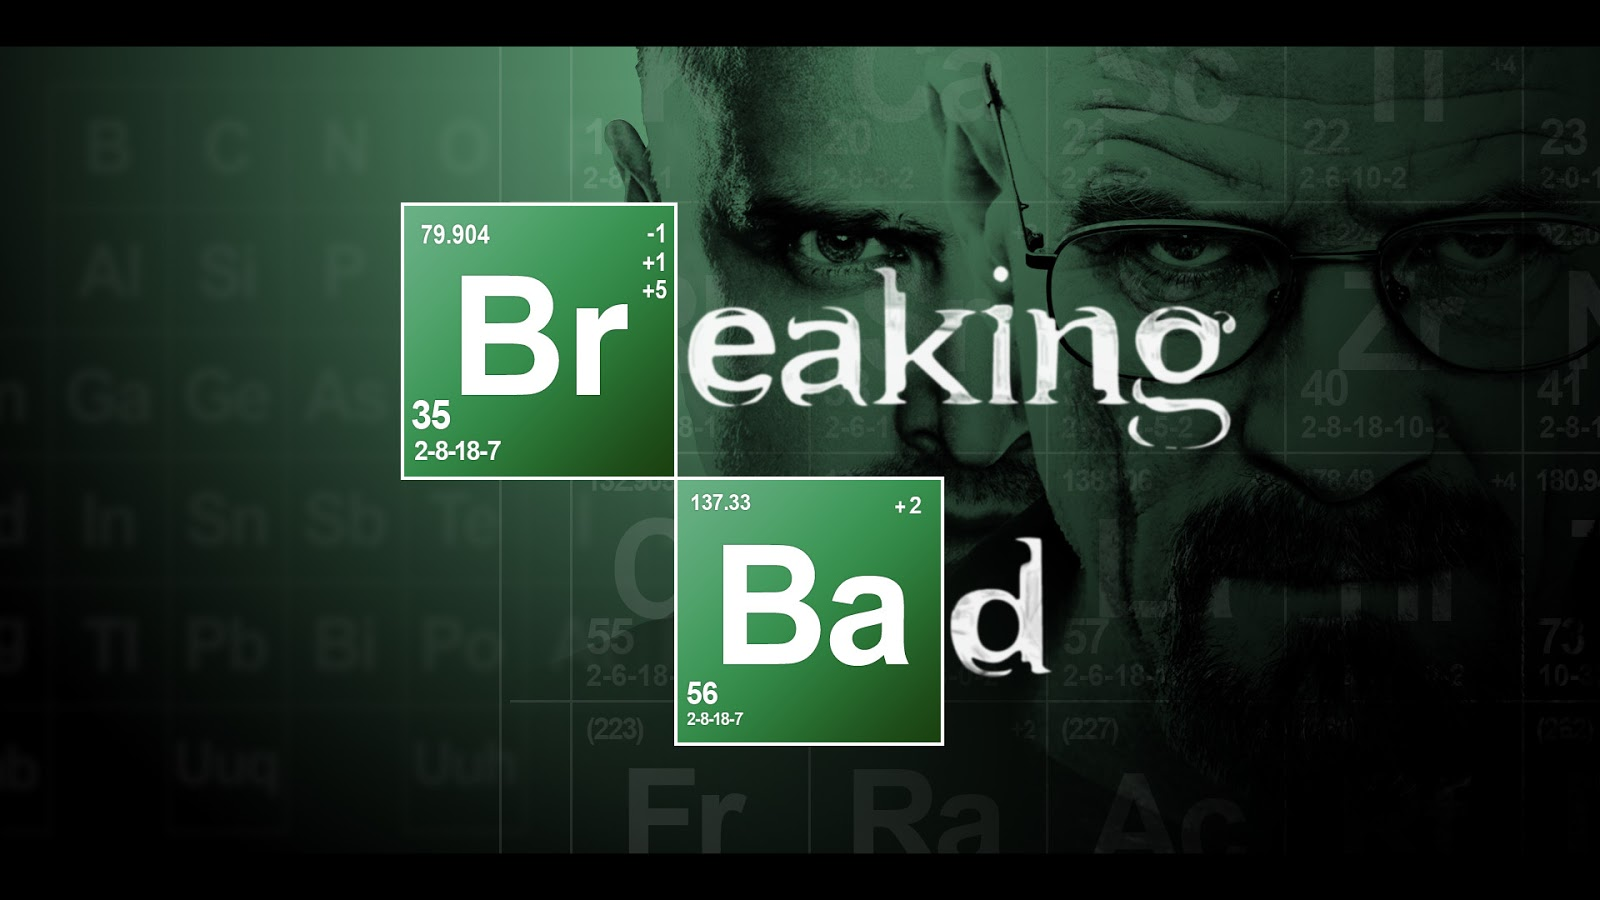 Breaking bad name generator the internaught a very cool way to create your own breaking bad type logo urtaz Gallery